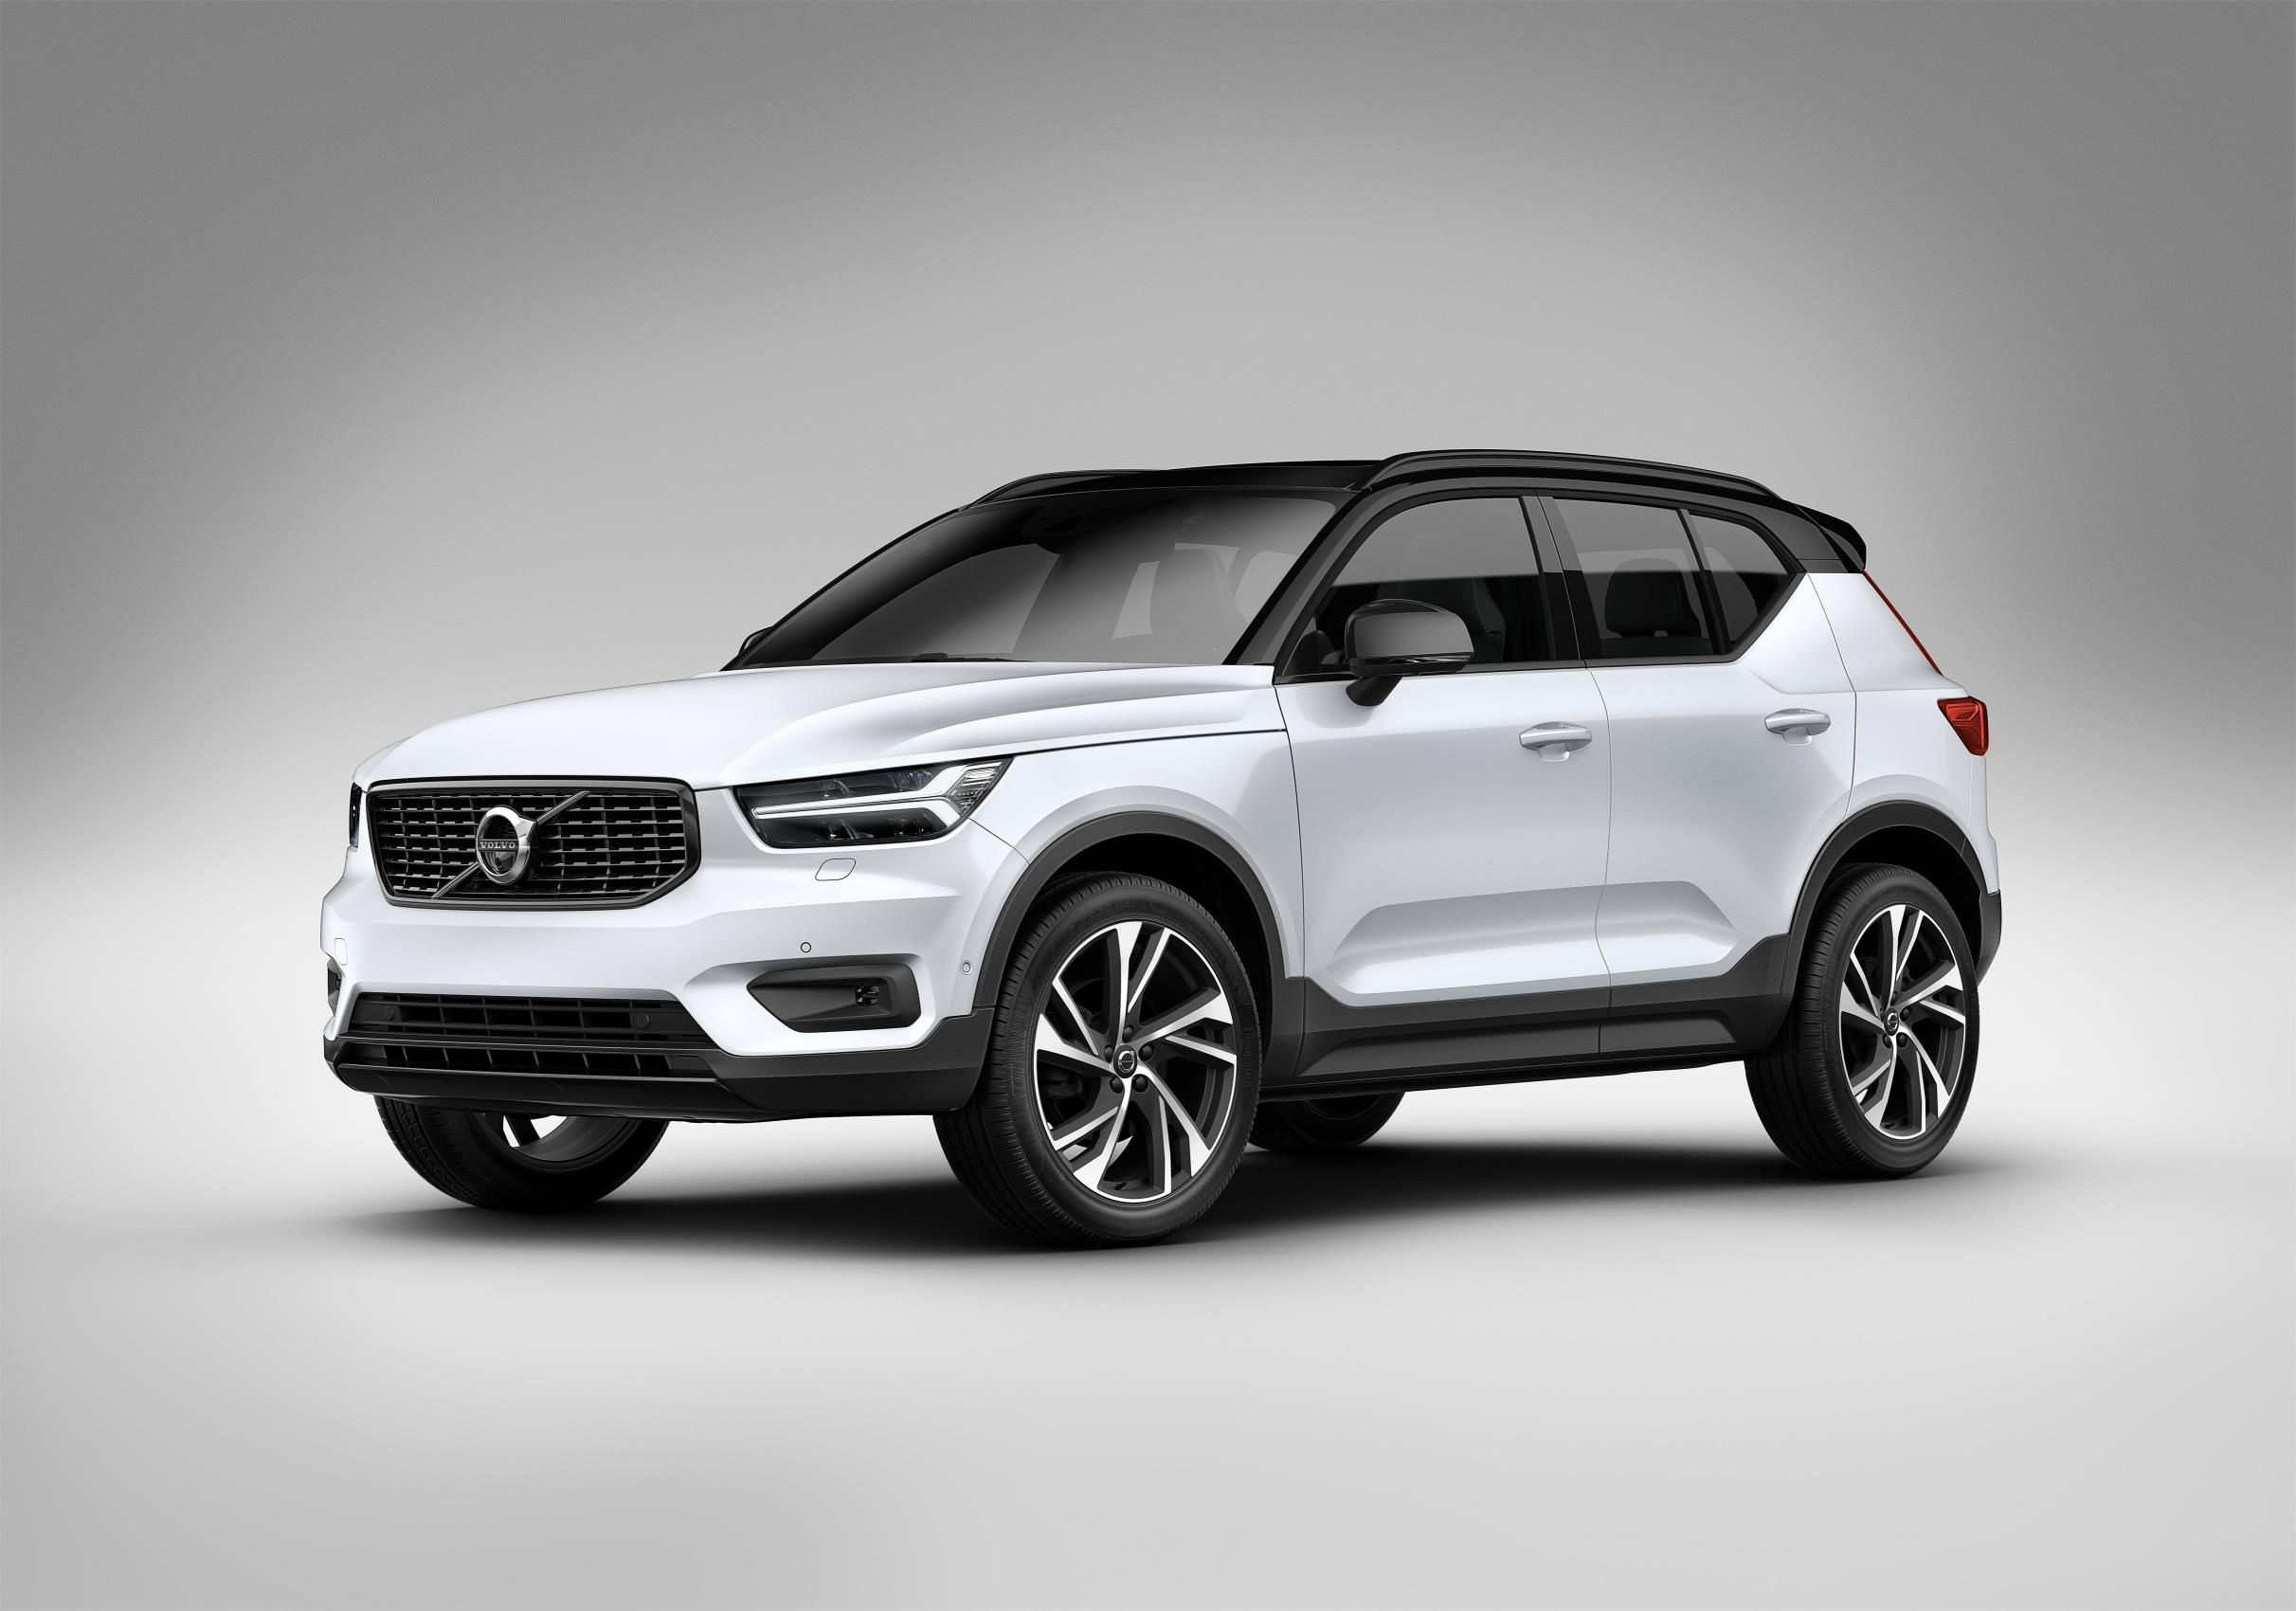 New Volvo XC40 named 2018 European Car of the Year